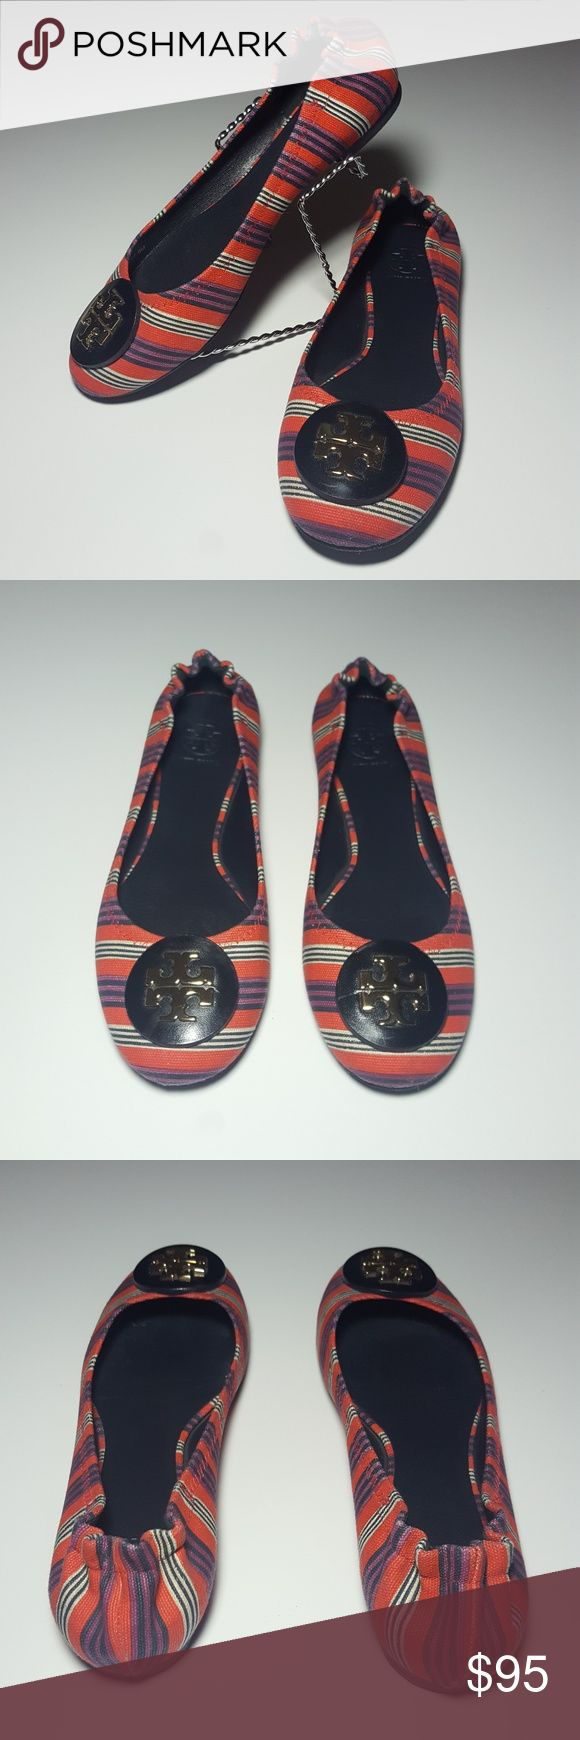 ♀ TORY BURCH womens REVA printed flats TORY BURCH REVA printed canvas flats  100% authentic, pre-owned  S/N: 11128003 Size: 8M Leather sole  The iconic Reva Ballet Flat, named after Tory's mother, is known for its timeless design and perfect fit. It features a signature logo medallion at the toe. Elastic around back ensures a secure, comfortable fit.  Check out my other Burberry, Zara, Nike, Under Armour, J Crew, Vince Camuto, TOPSHOP, Coach, Michael Kors, Forever 21, Kate Spade, and Lacoste…